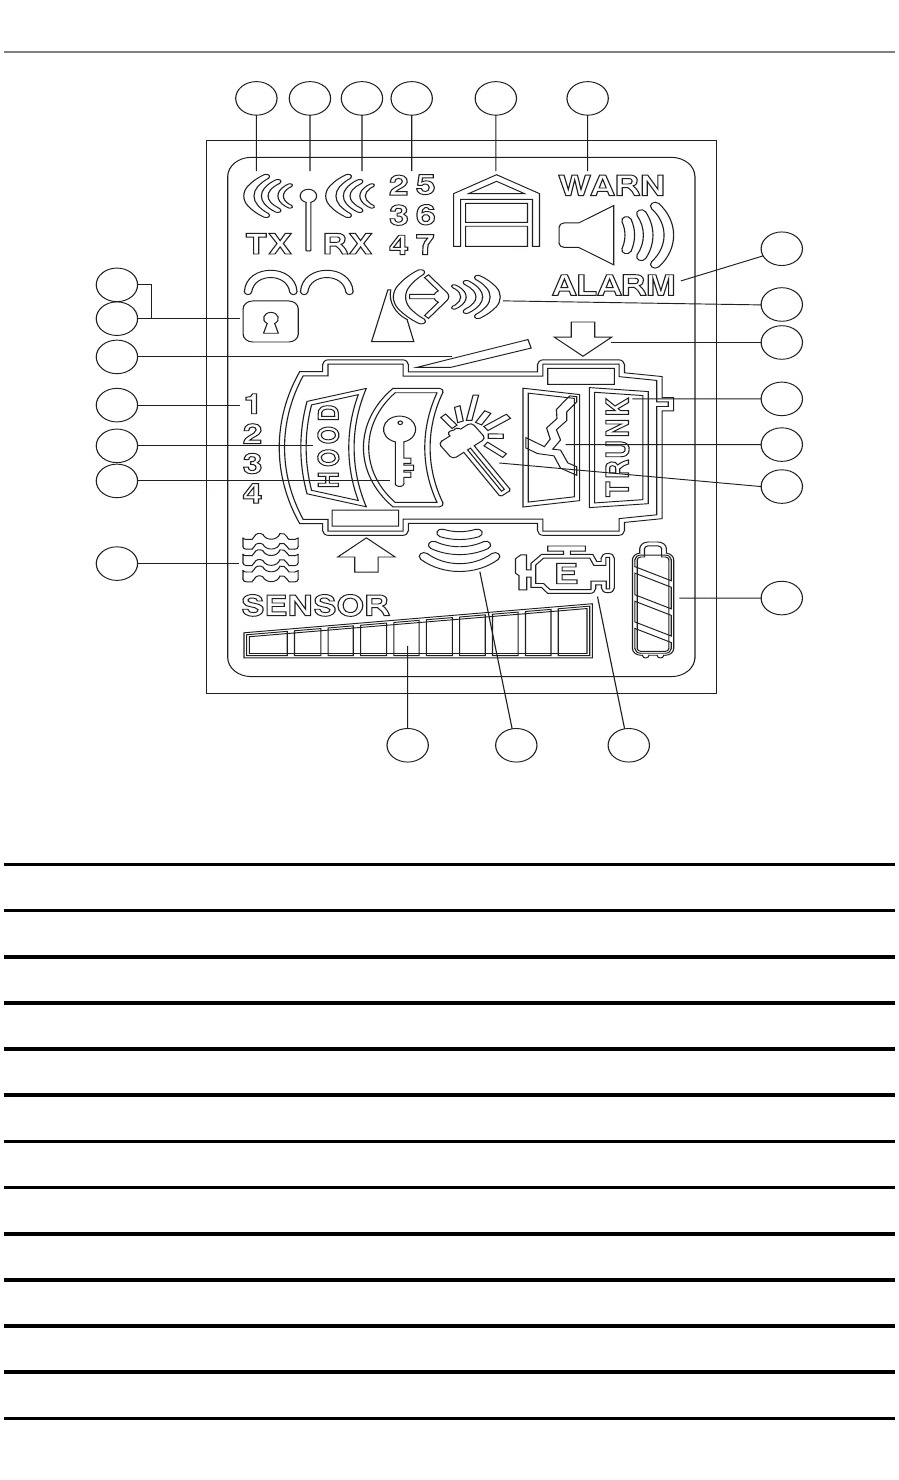 F Dd Abb Ac Bafb B C F Bg on Viper 5704v Wiring Diagram For Alarm